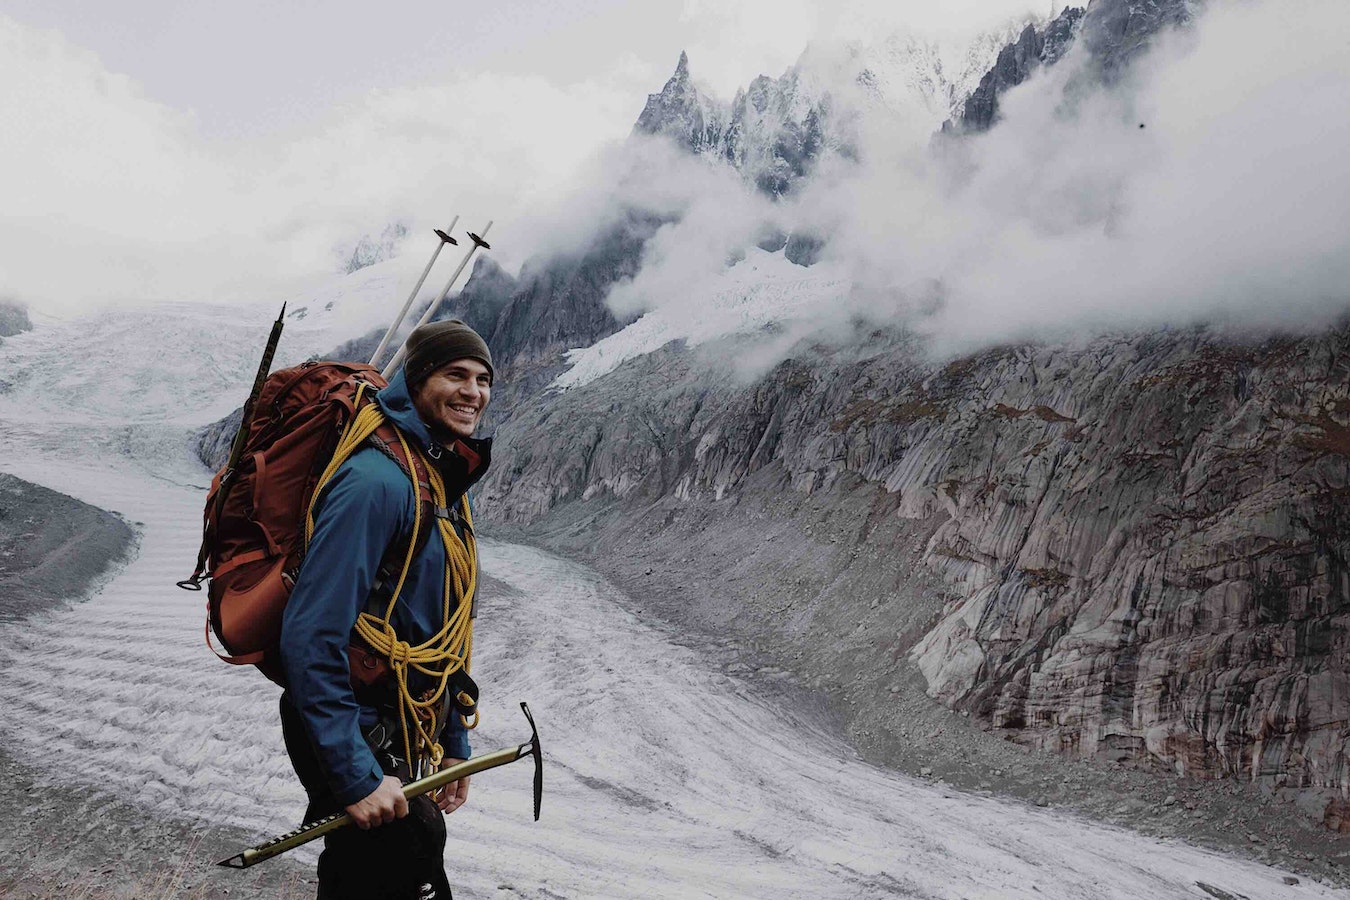 Smiling man climbing icy mountain.